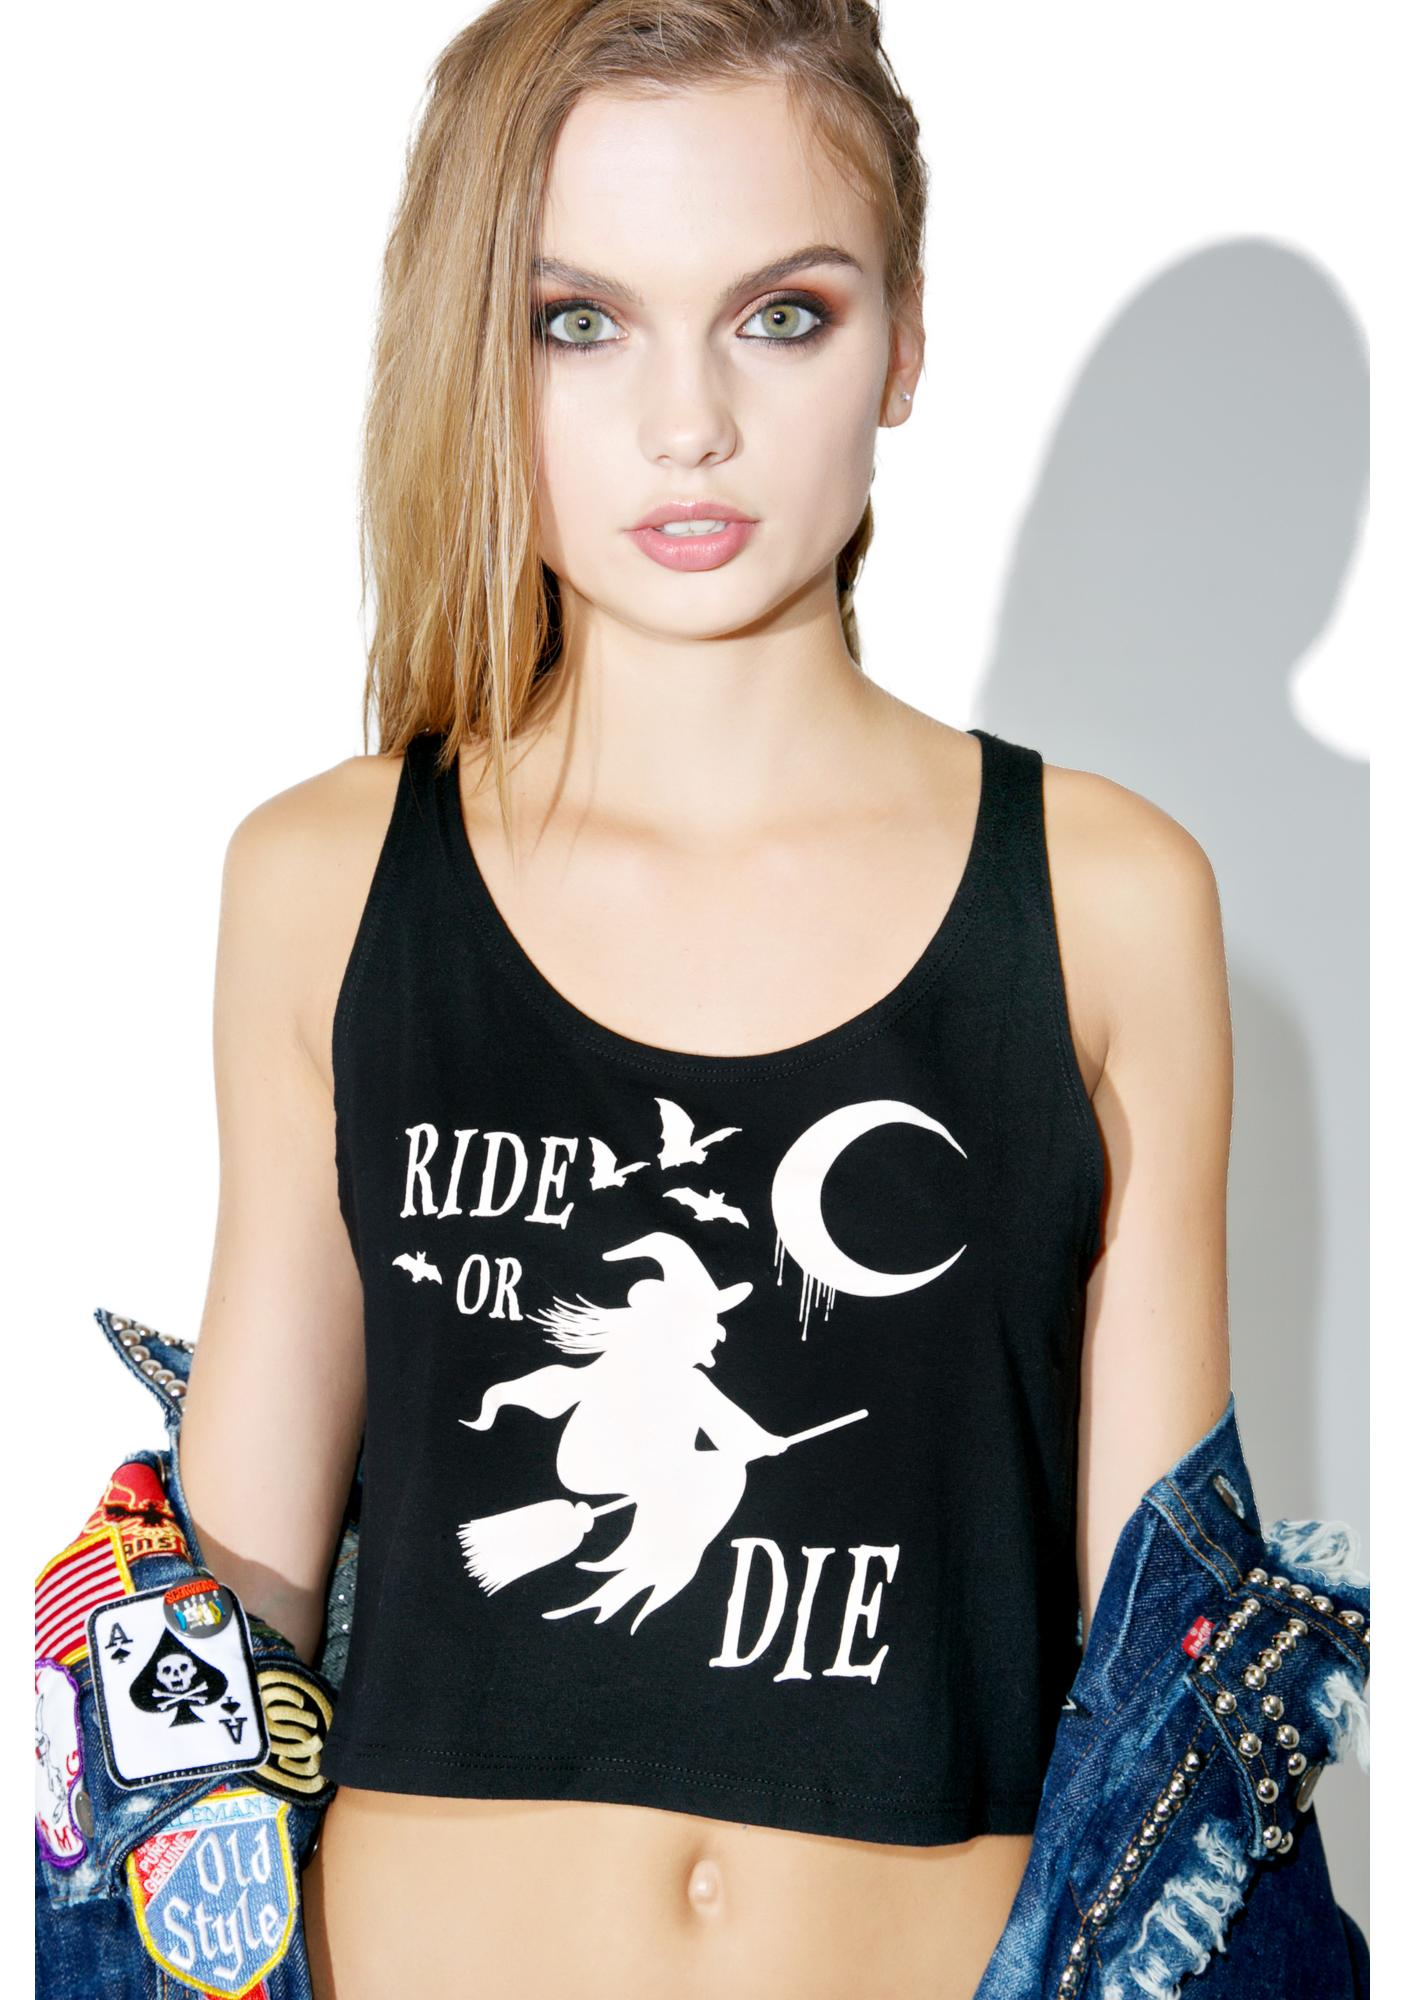 The Ride Or Die Crop Top